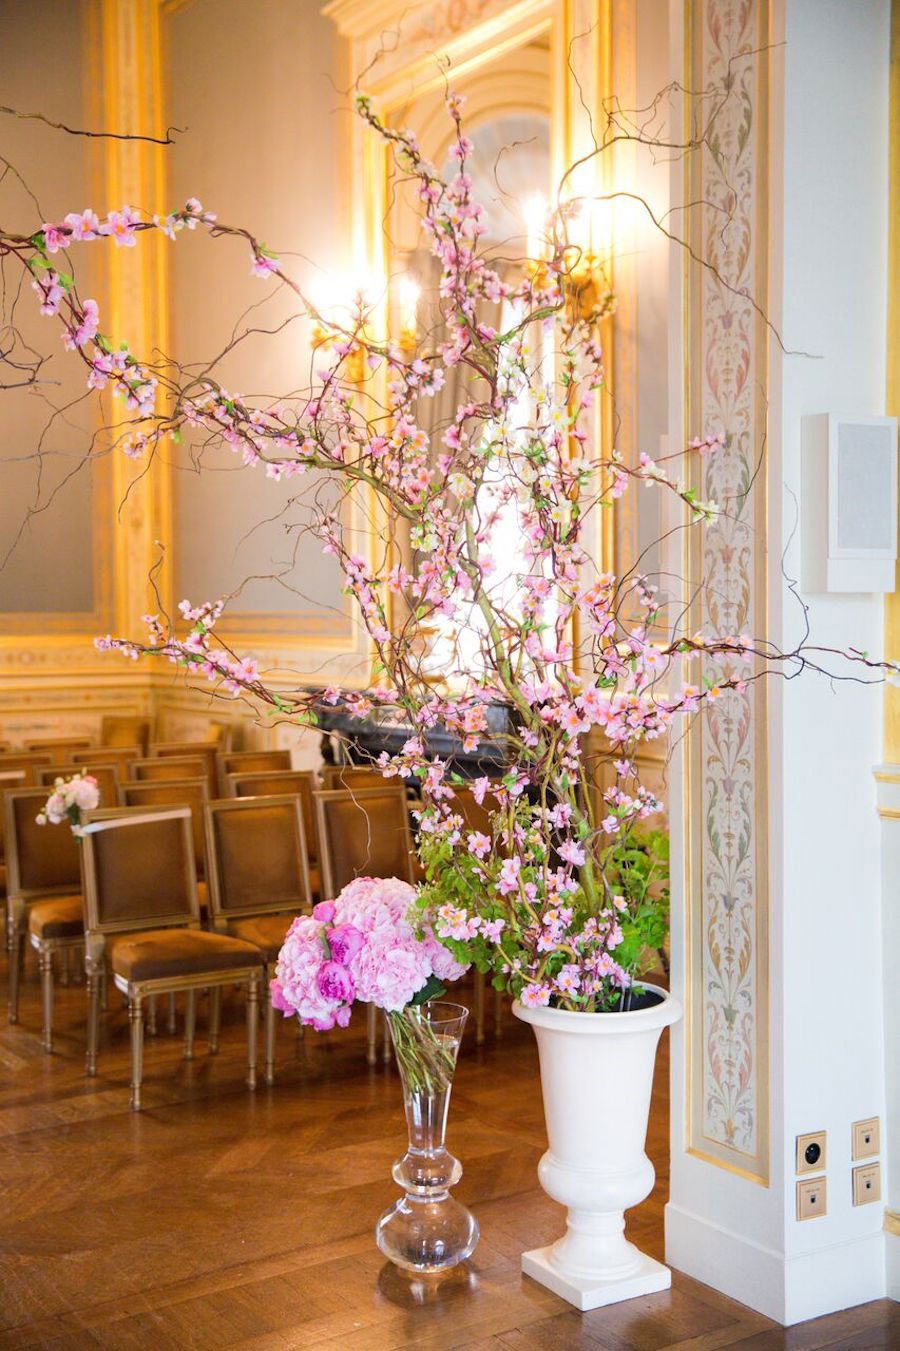 Parisian Pink & Gold Wedding With Pretty Cherry Blossom Arch0010